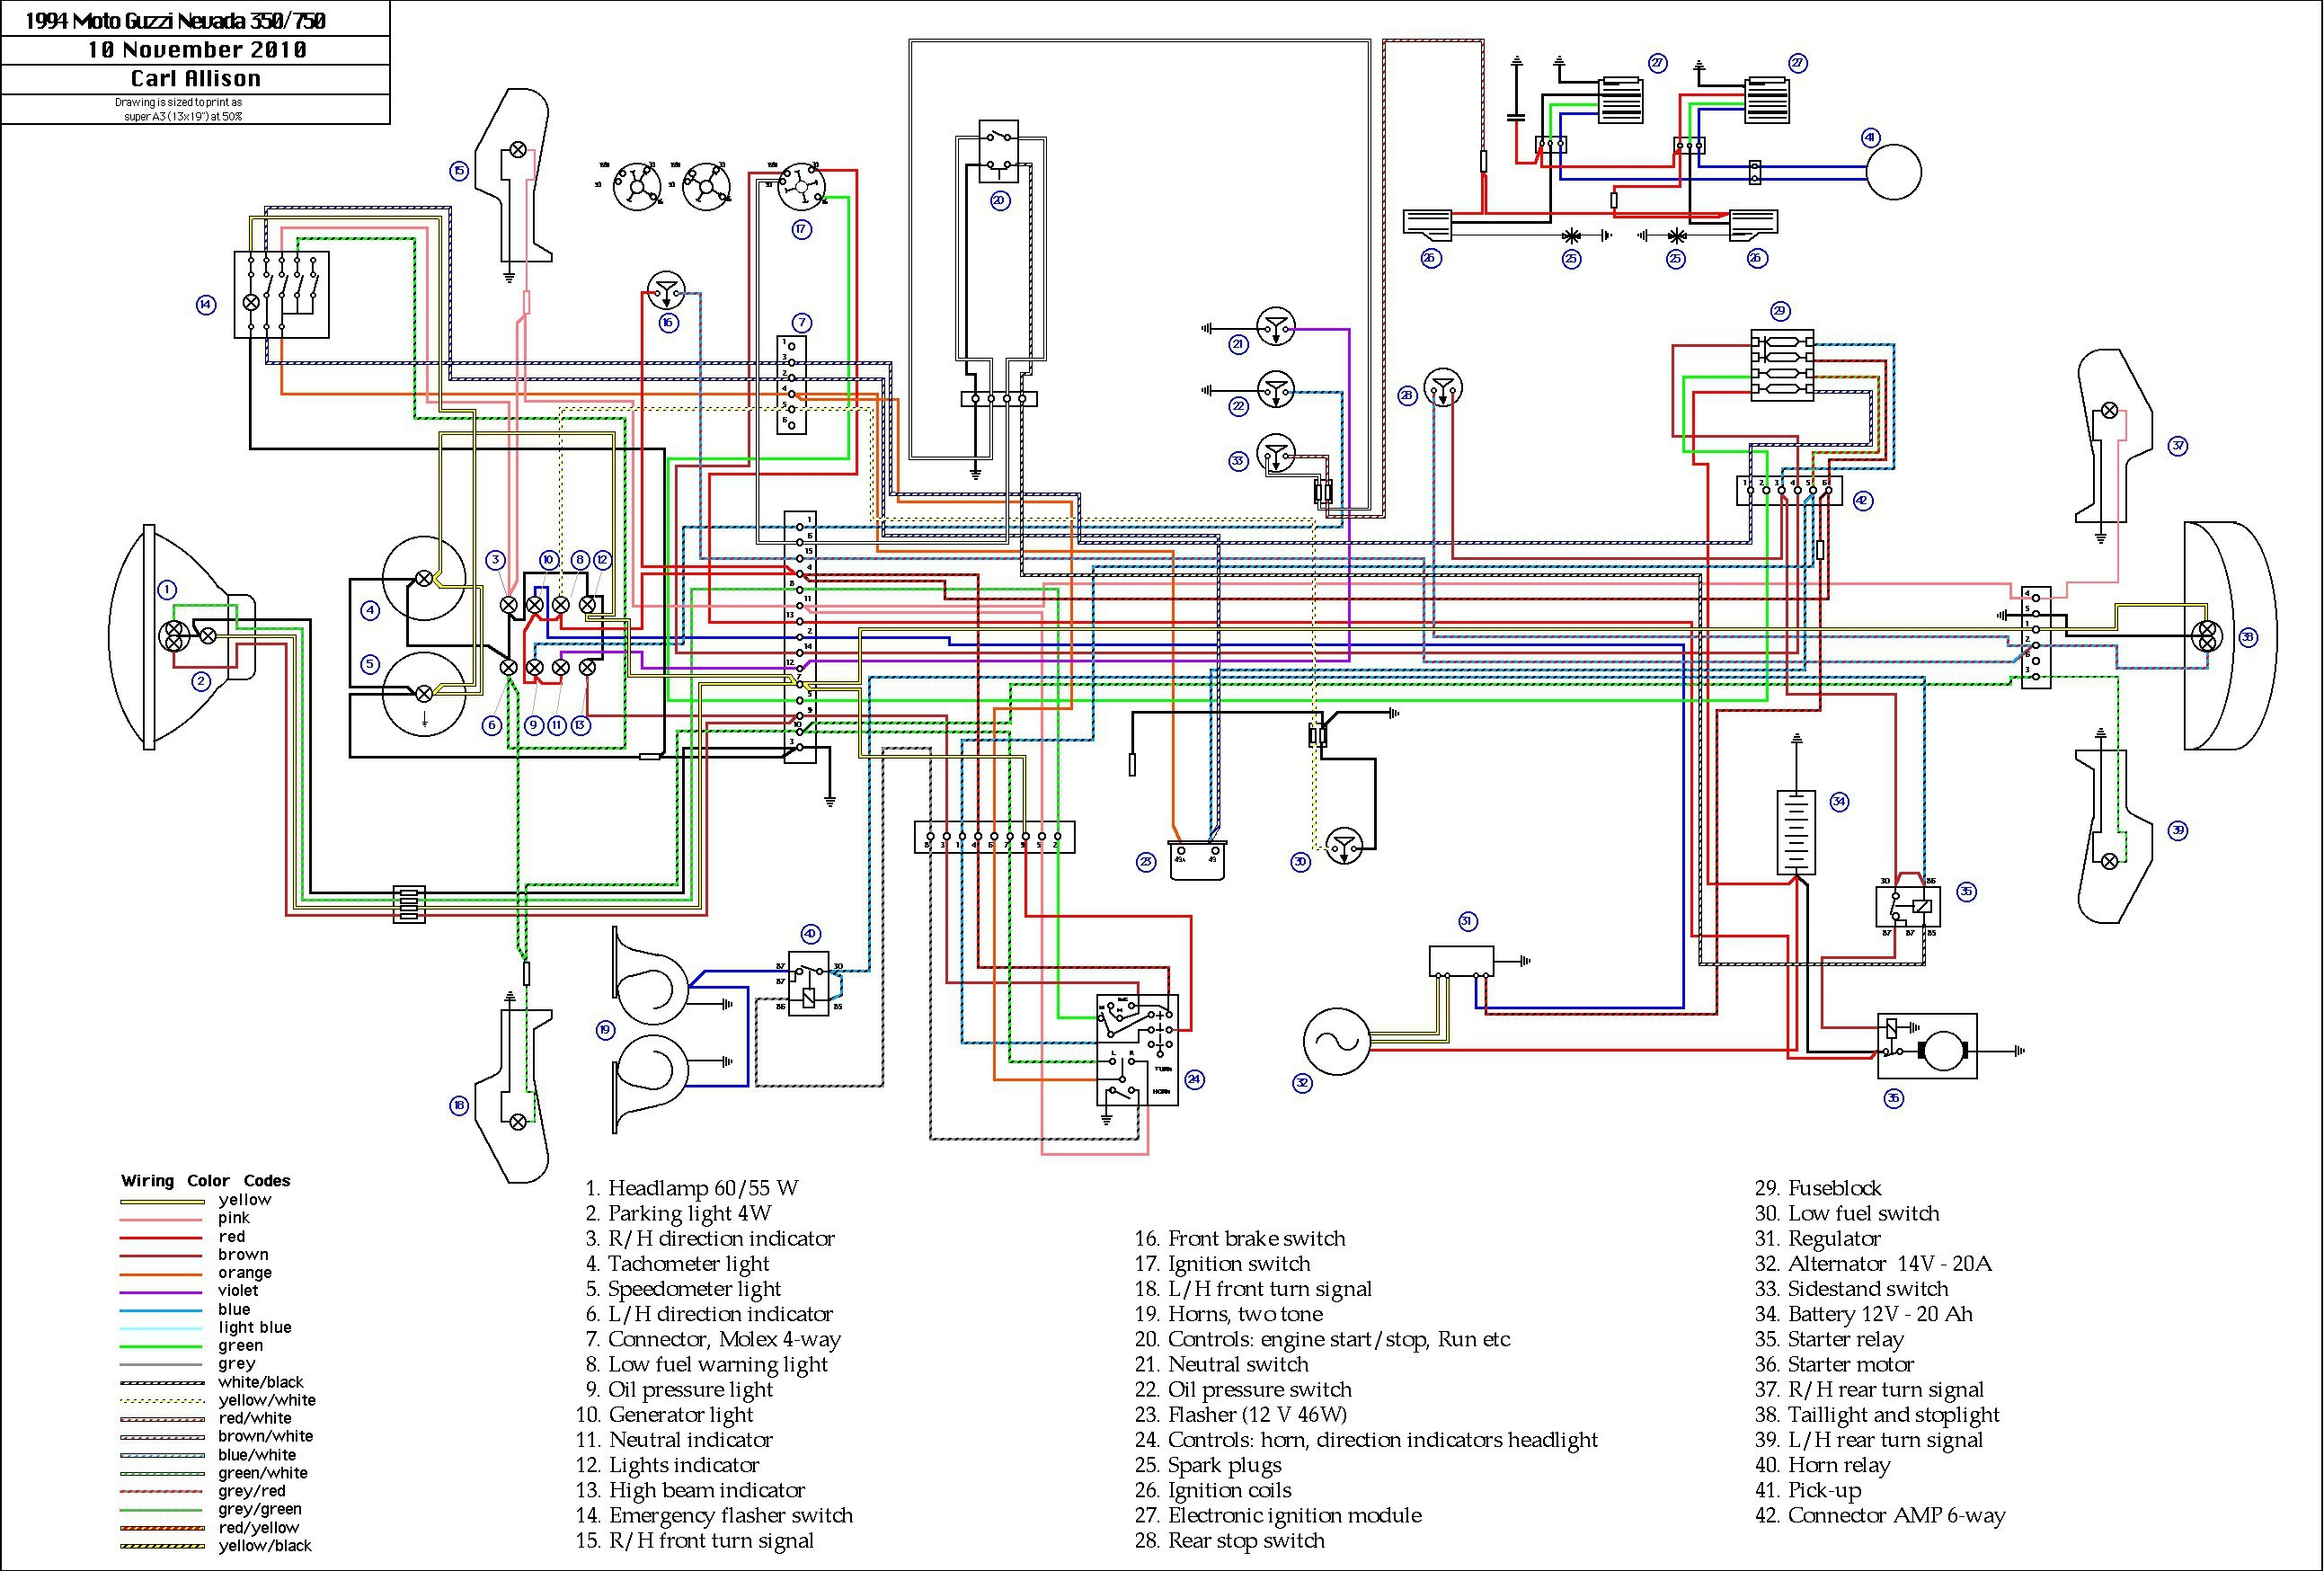 Yamaha Atv Wiring Diagram And Schematics 2003 Kodiak Free Download Banshee Engine Starter Solenoid Rh Detoxicrecenze Com Cdi